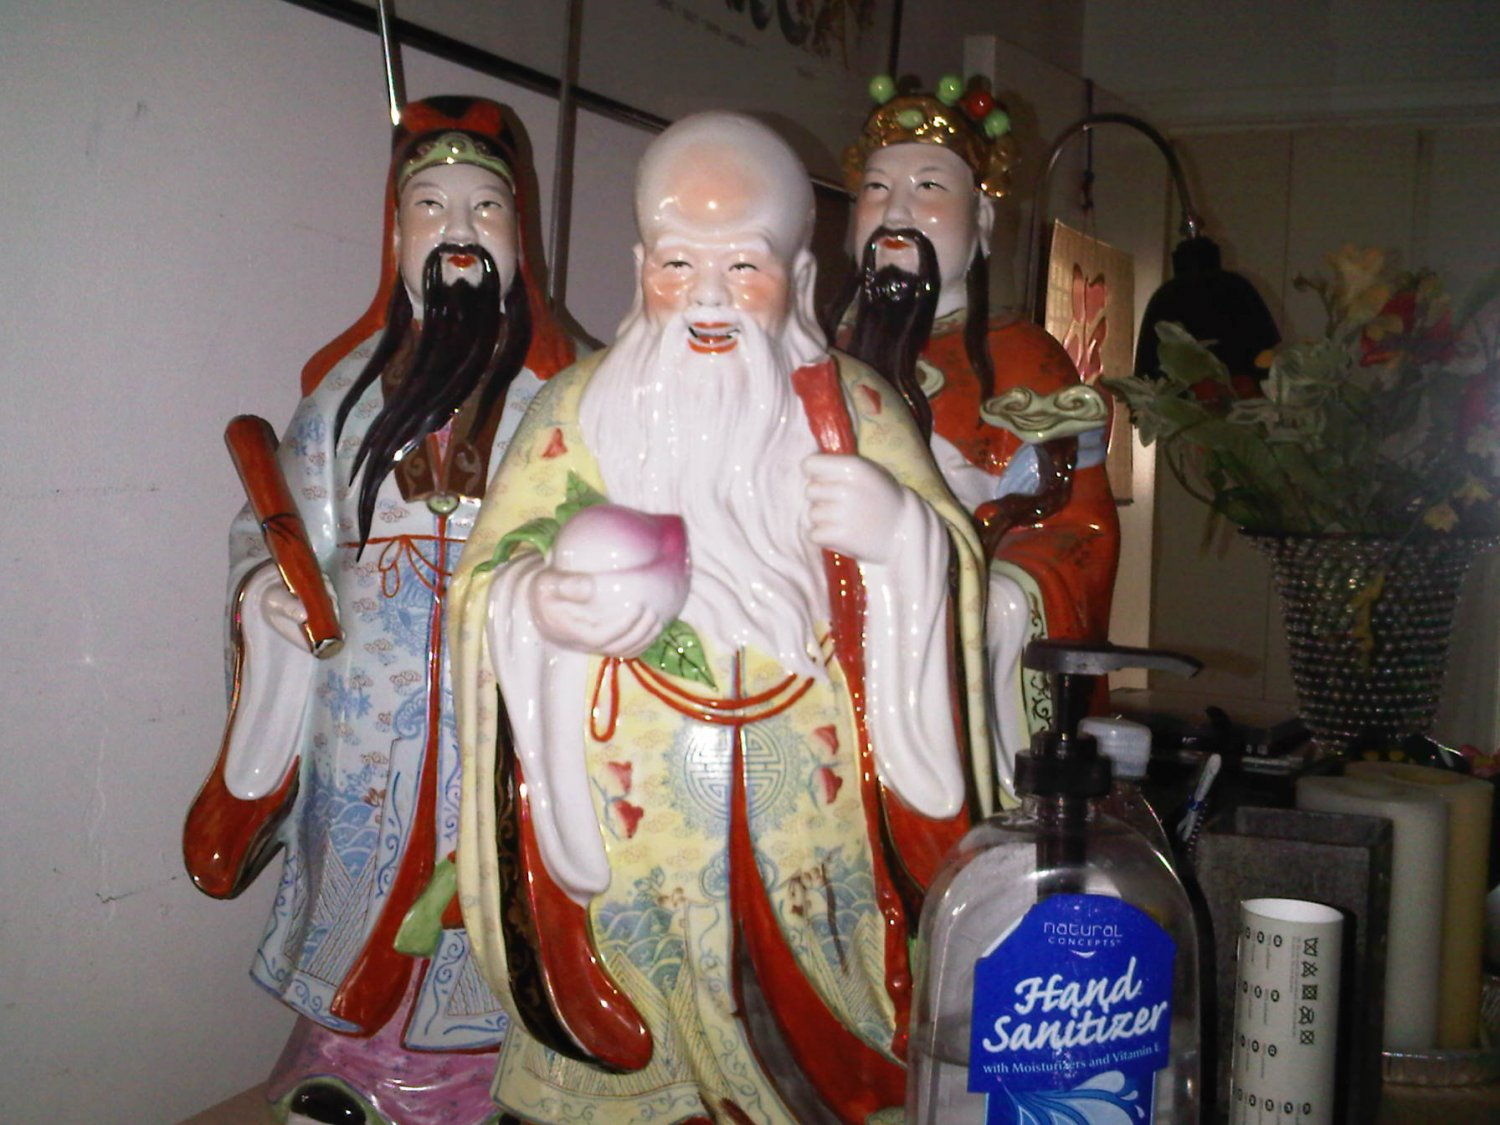 AS-IS 3 LOT VINTAGE CHINESE STATUE GOD WISDOM MONEY WAR COLLECTIBLE FIGURINE HONG KONG